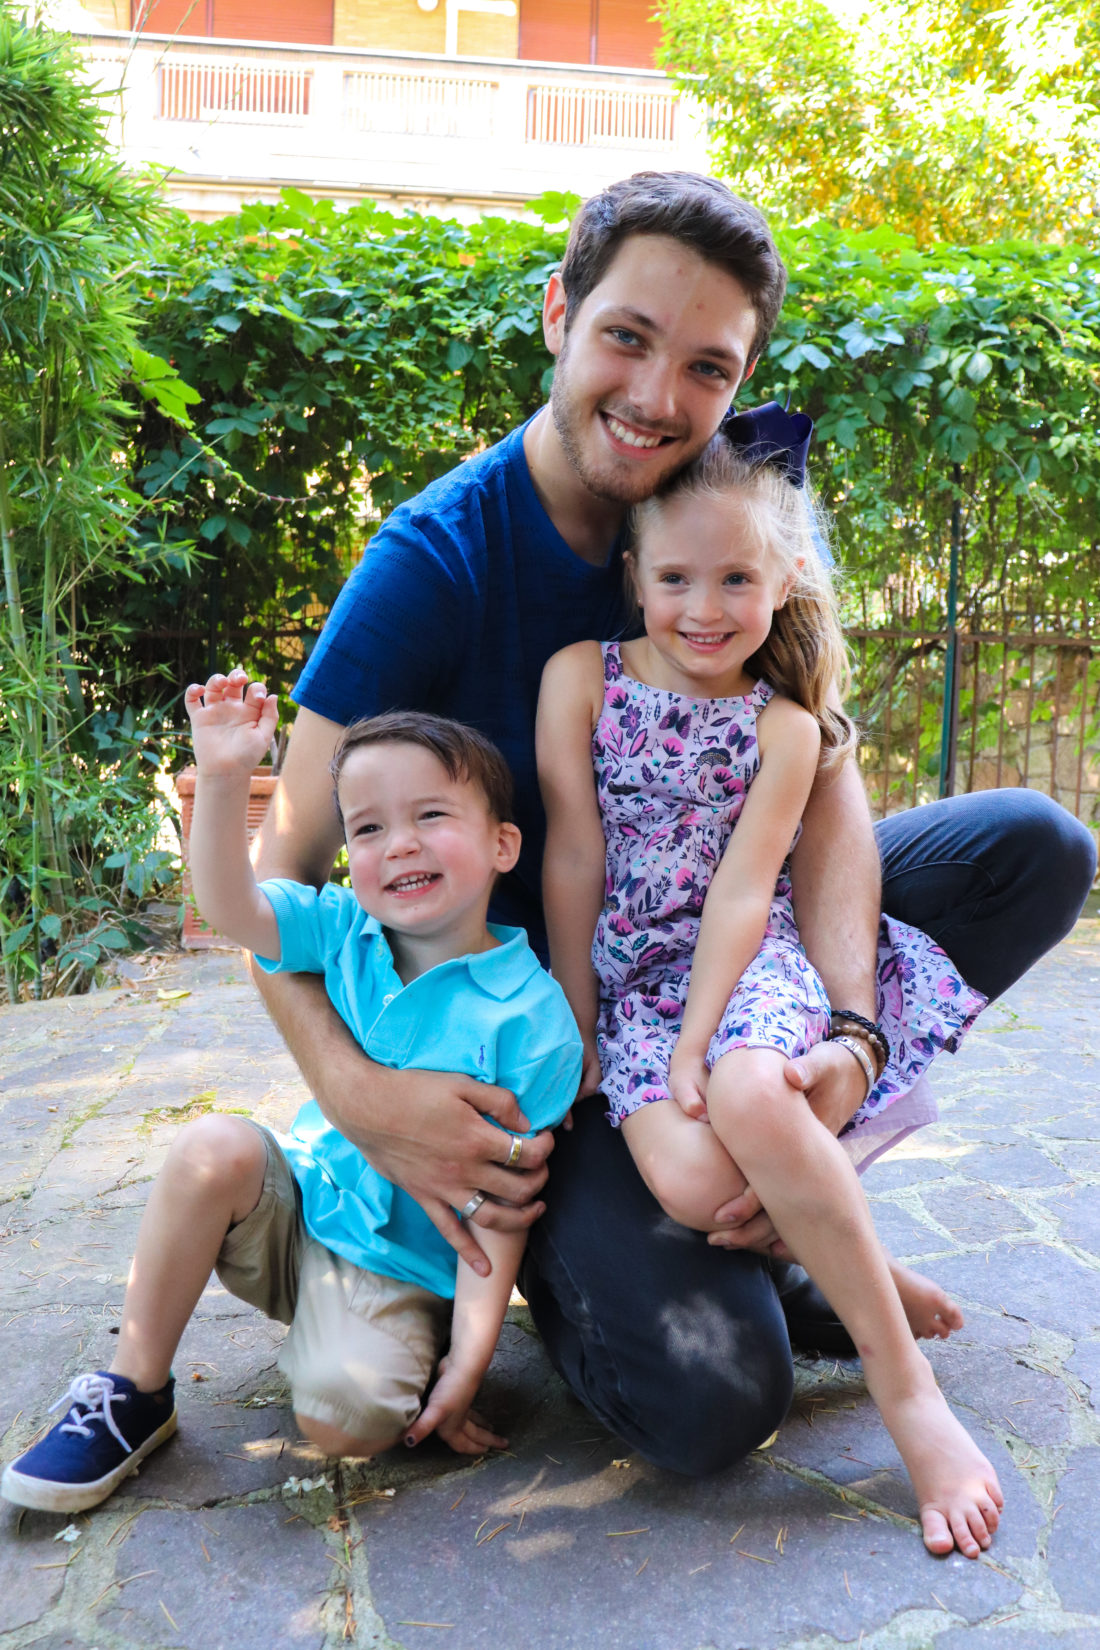 Eva Amurri Martino's brother Leoné with her children Marlowe and Major